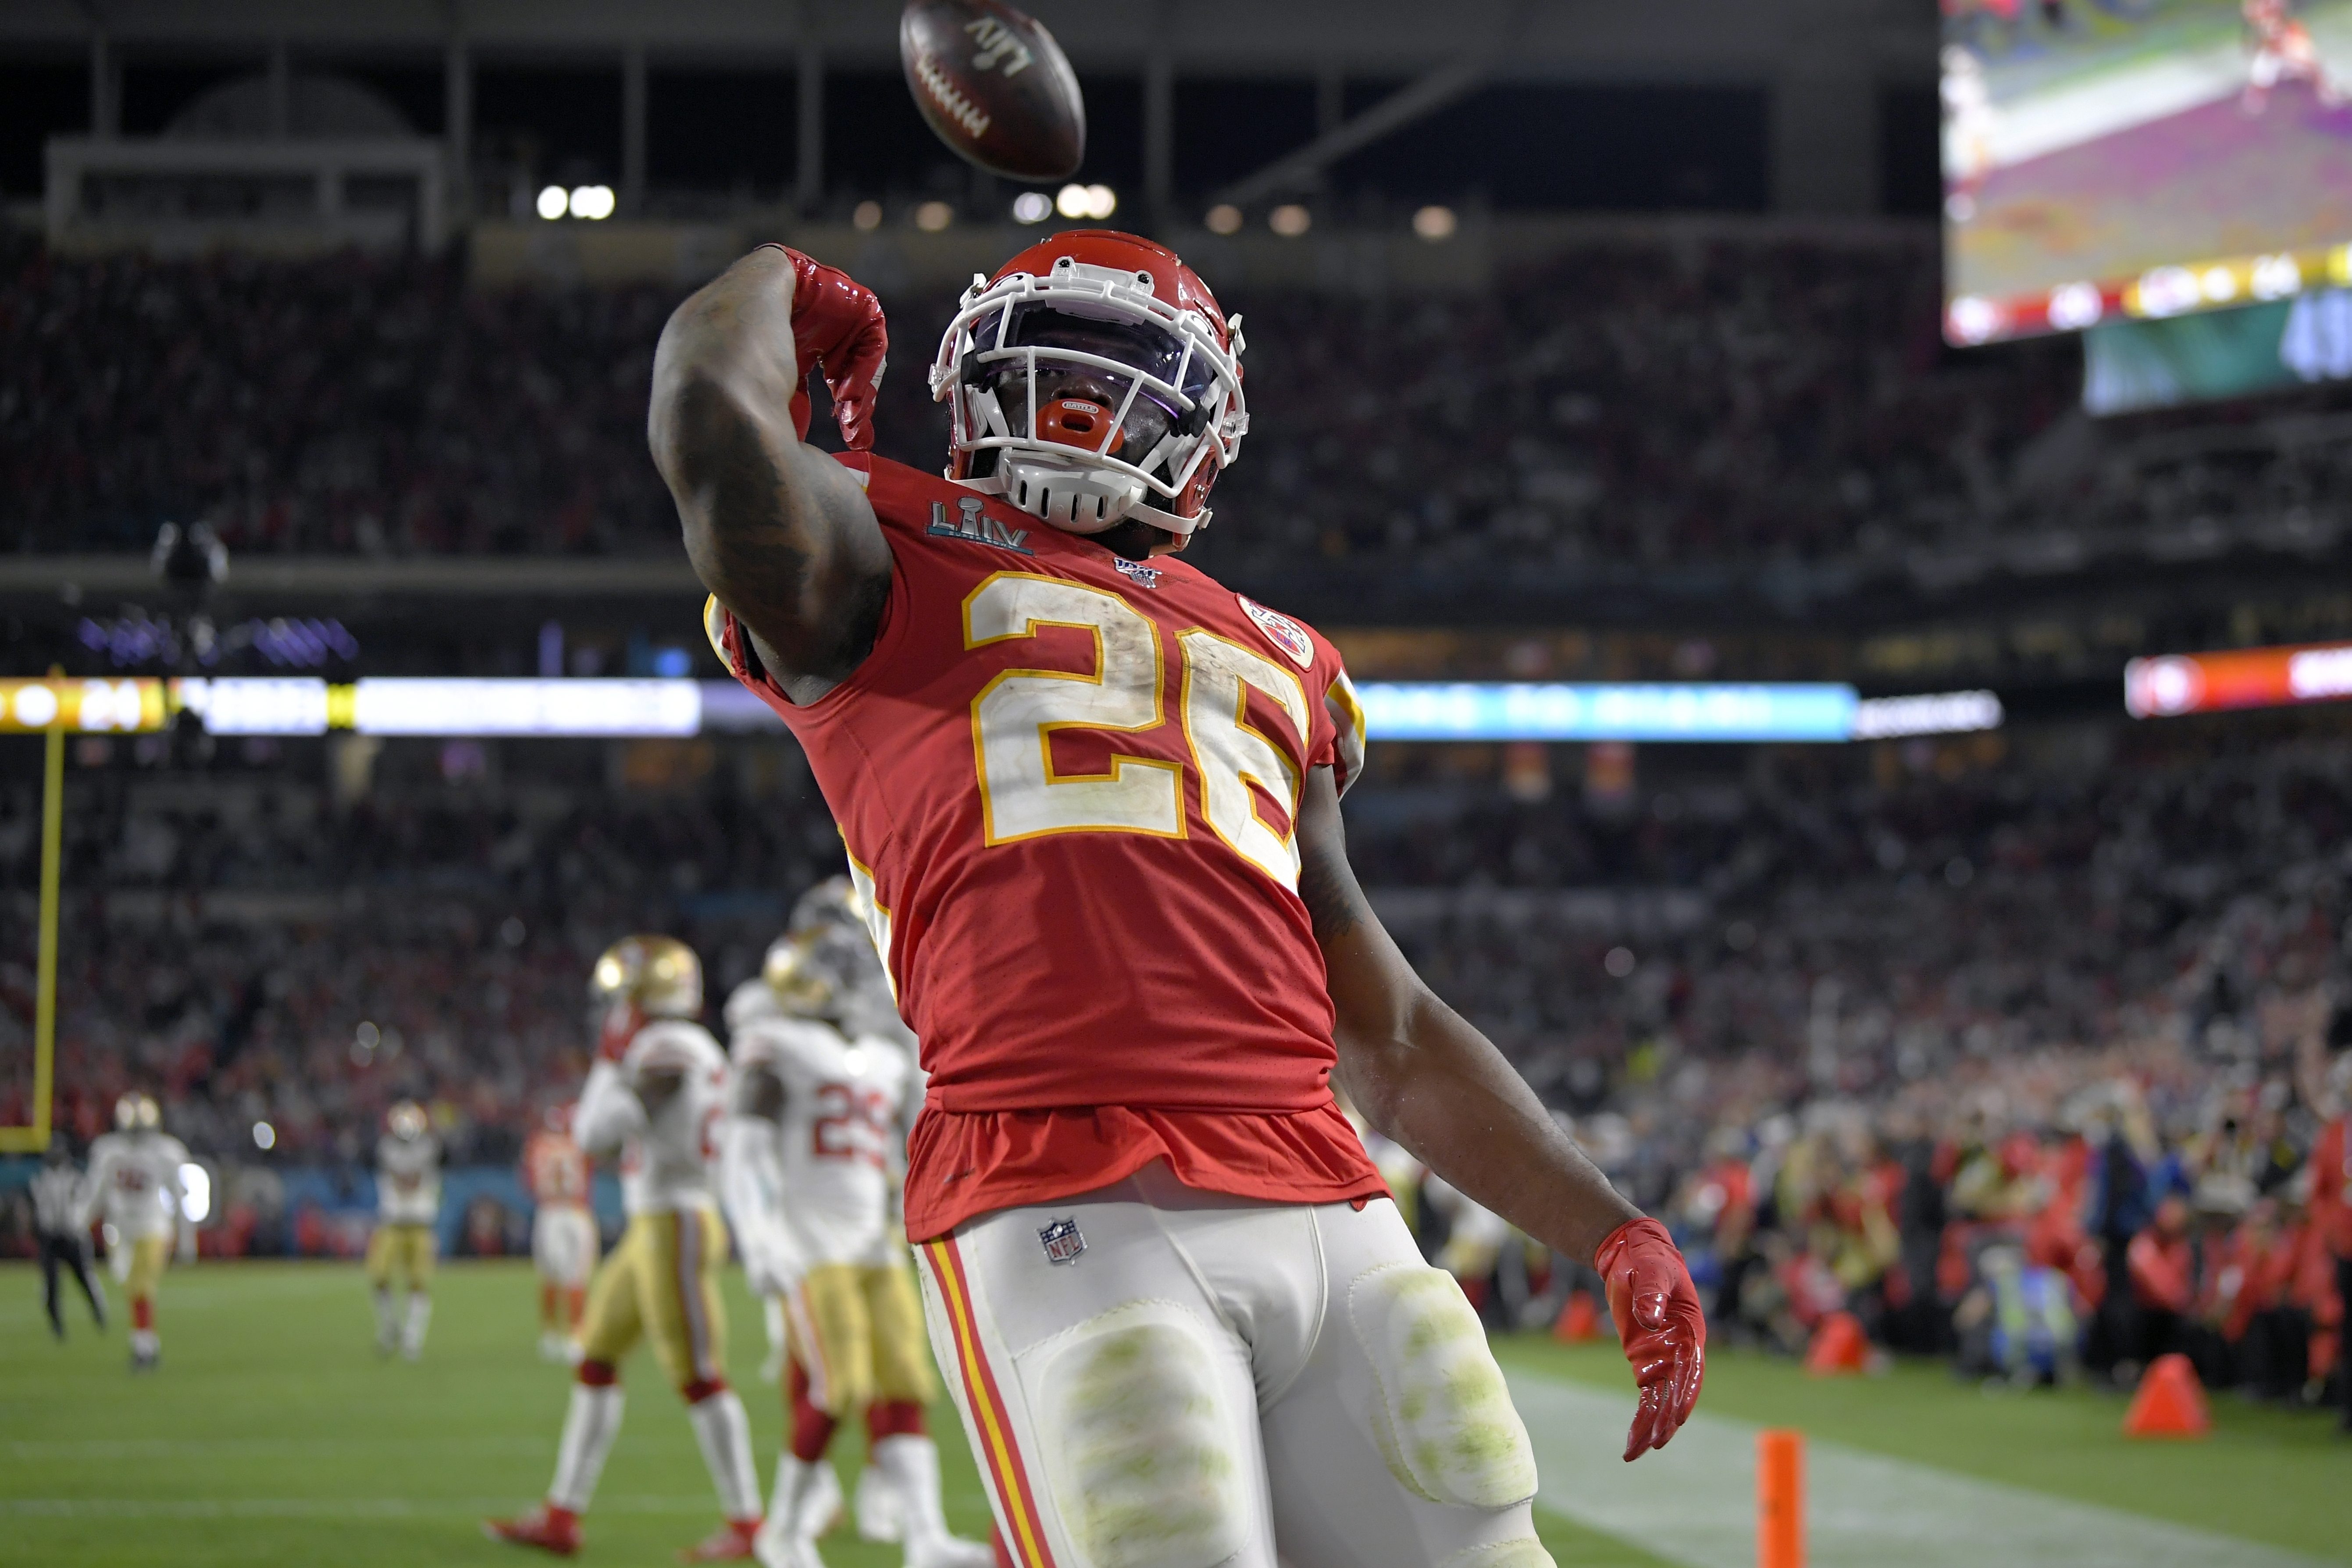 Williams Late Tds Help Kc Rally Past 49ers In Super Bowl Wavy Com Videos i found on reddit. copyright 2020 the associated press all rights reserved